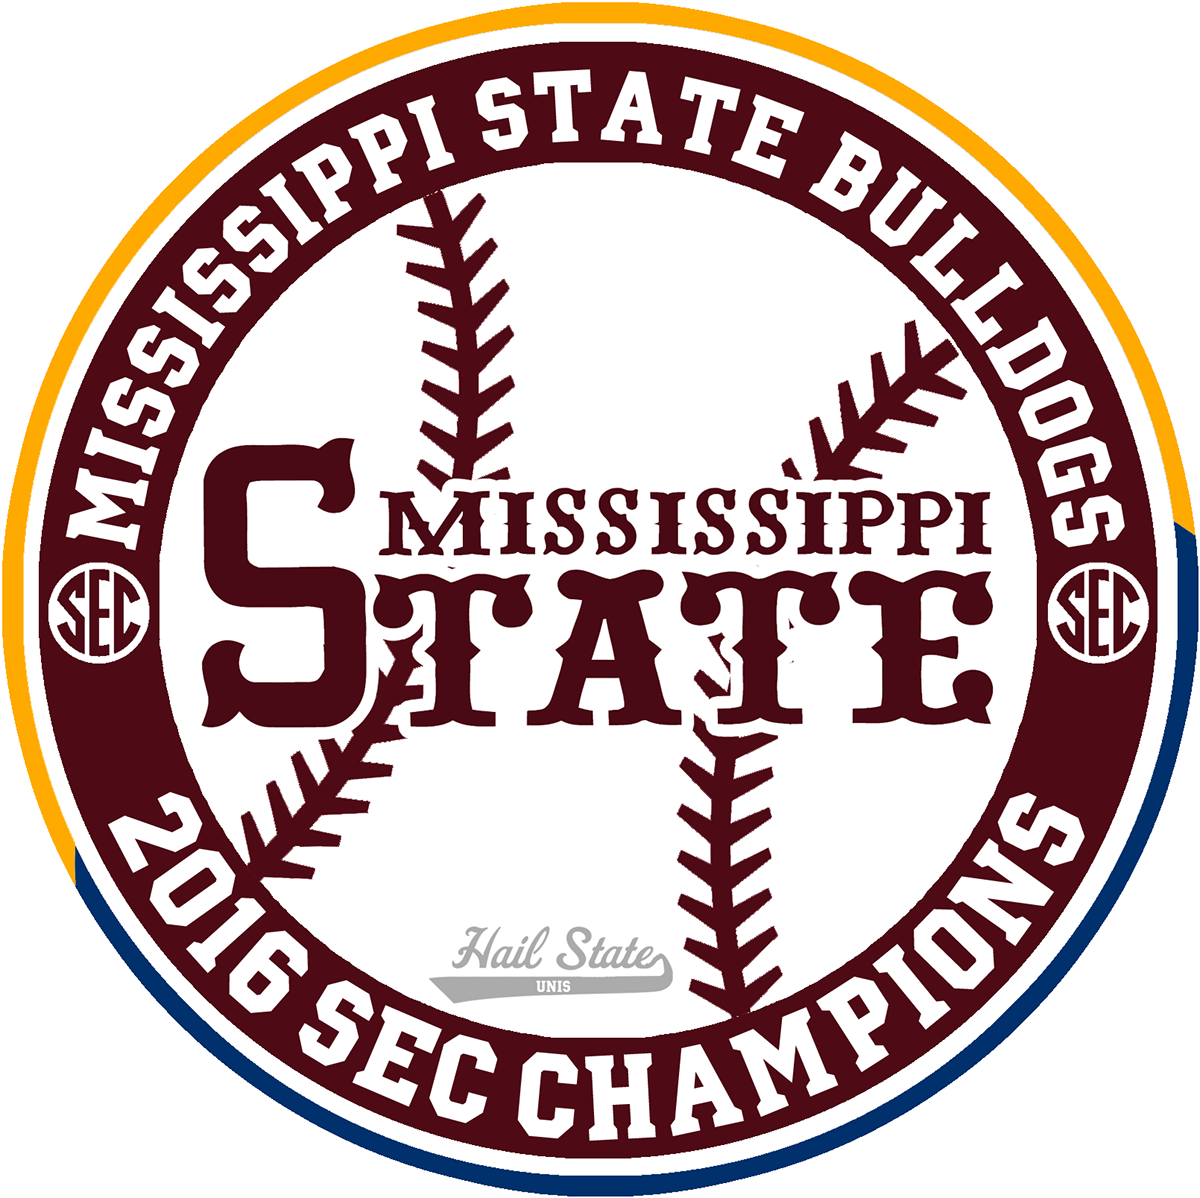 https://www.behance.net/gallery/37476125/MSU-2016-SEC-Baseball-Champions-Roundel